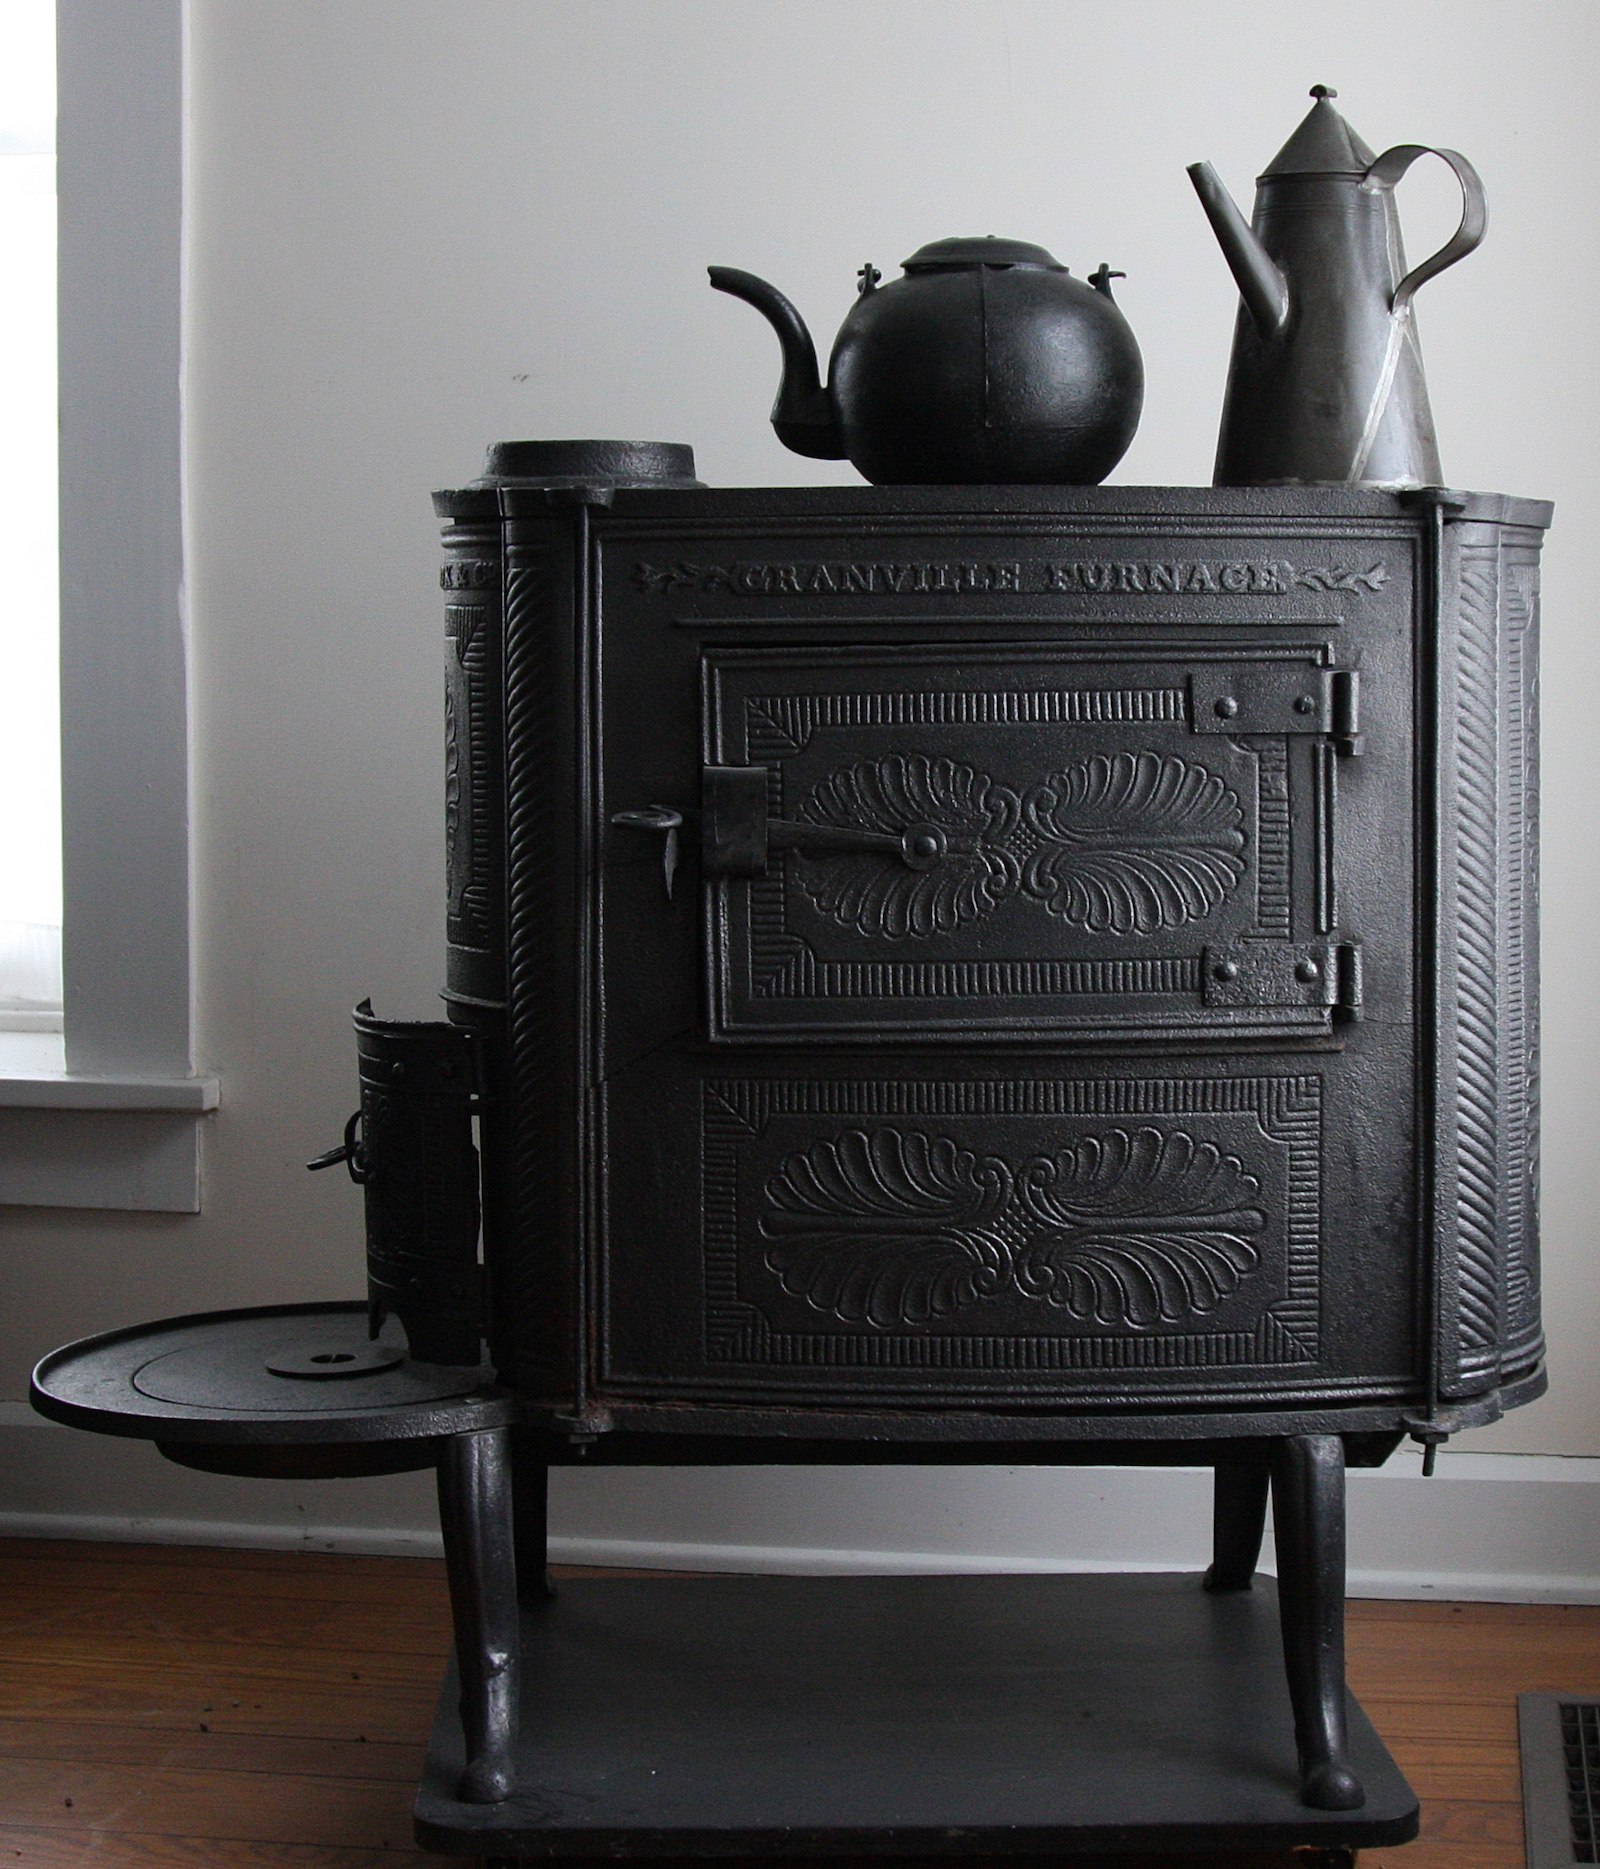 This stove, manufactured by the Granville Furnace in the 19th century, hints at Granville's unexpected past as an industrial town.  The stove is now housed in the Granville Historical Society museum.